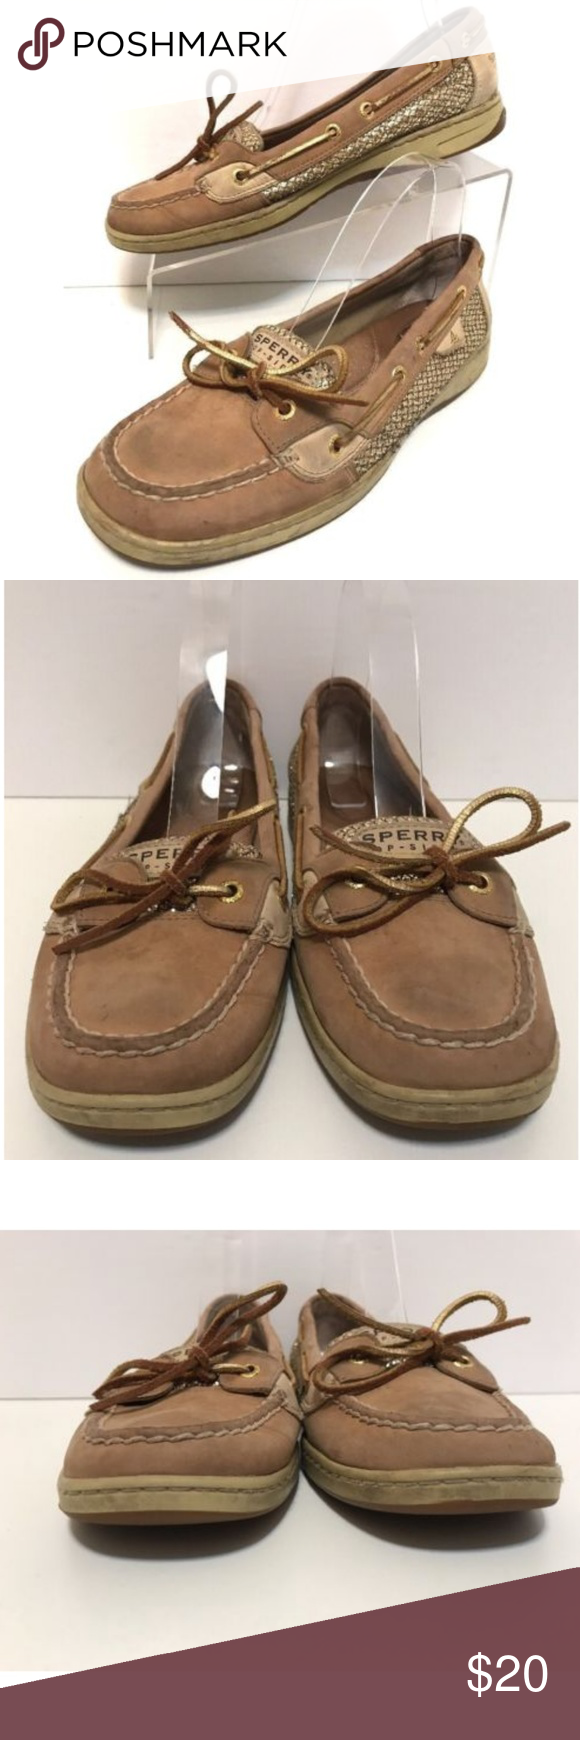 0c3d2ac76b2 Loafers · Slip On · Sperry Brown Gold Boat Deck Shoes Size 9.5 Sperry  Top-Siders Womens Angelfish Brown Gold